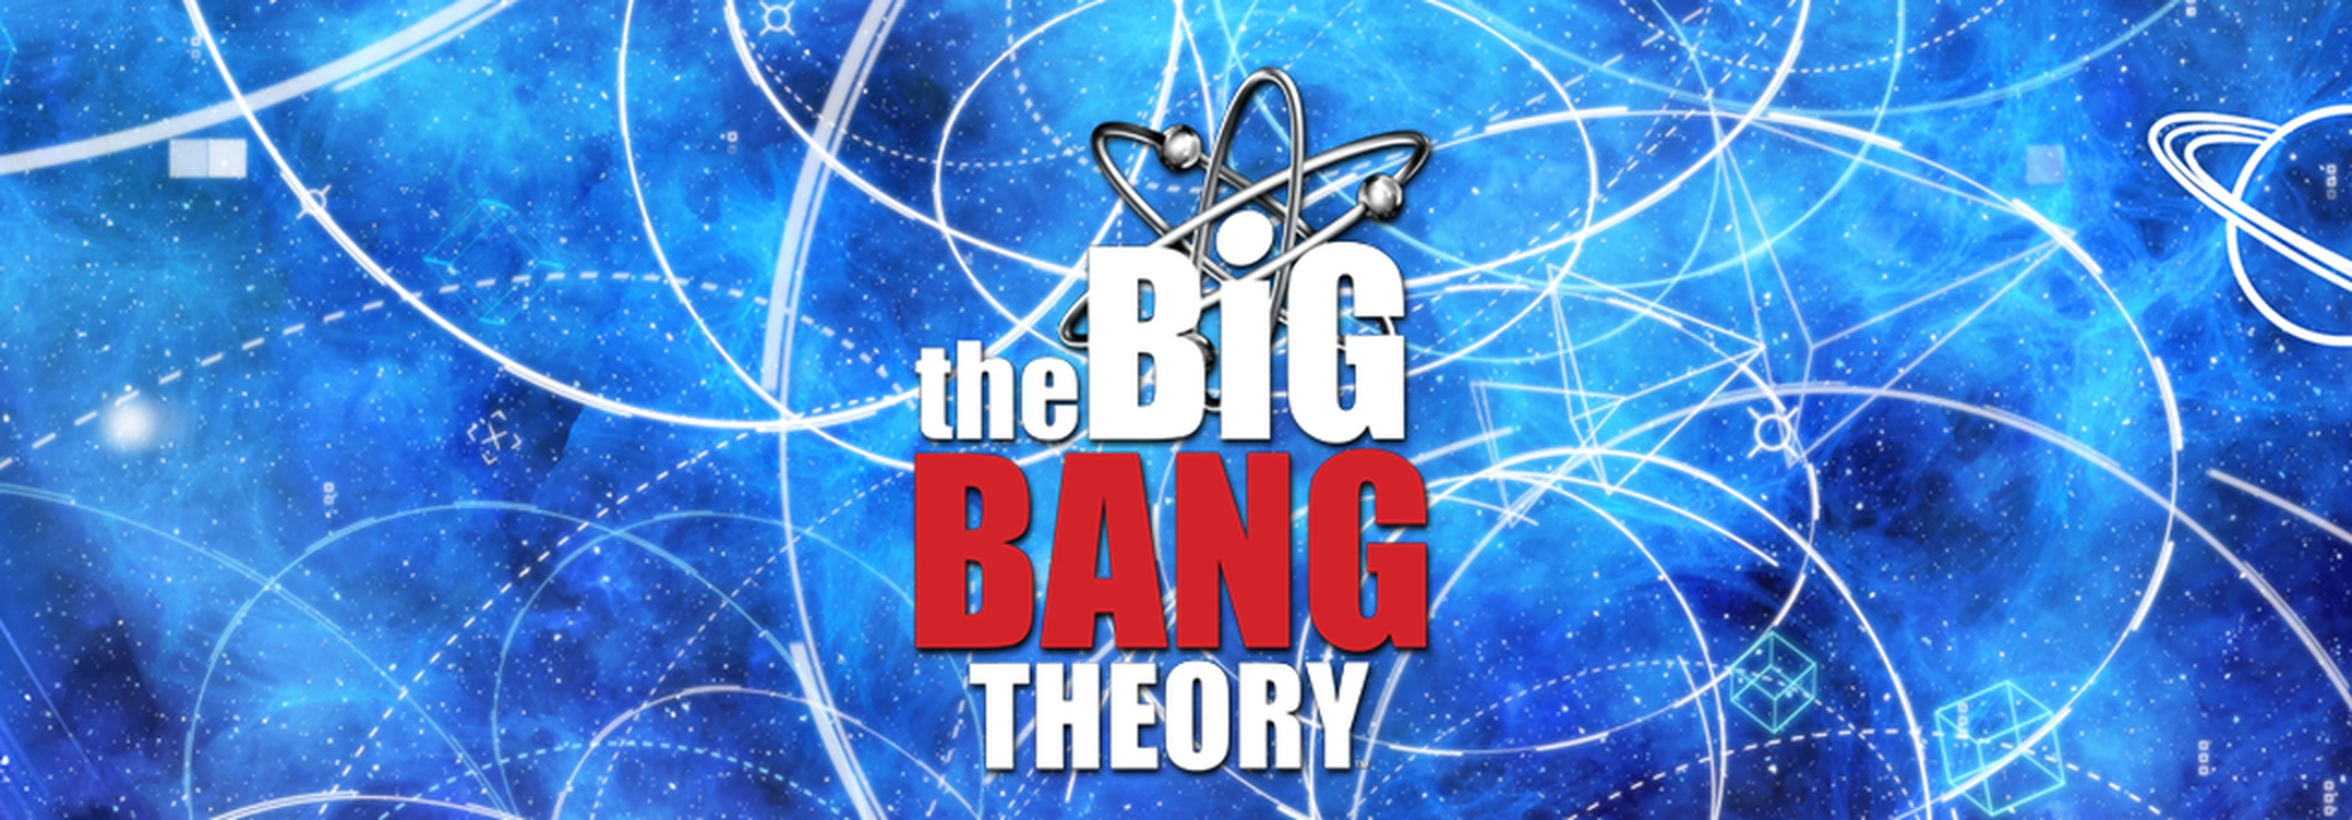 The The Big Bang Theory Online Slot Demo Game by Aristocrat